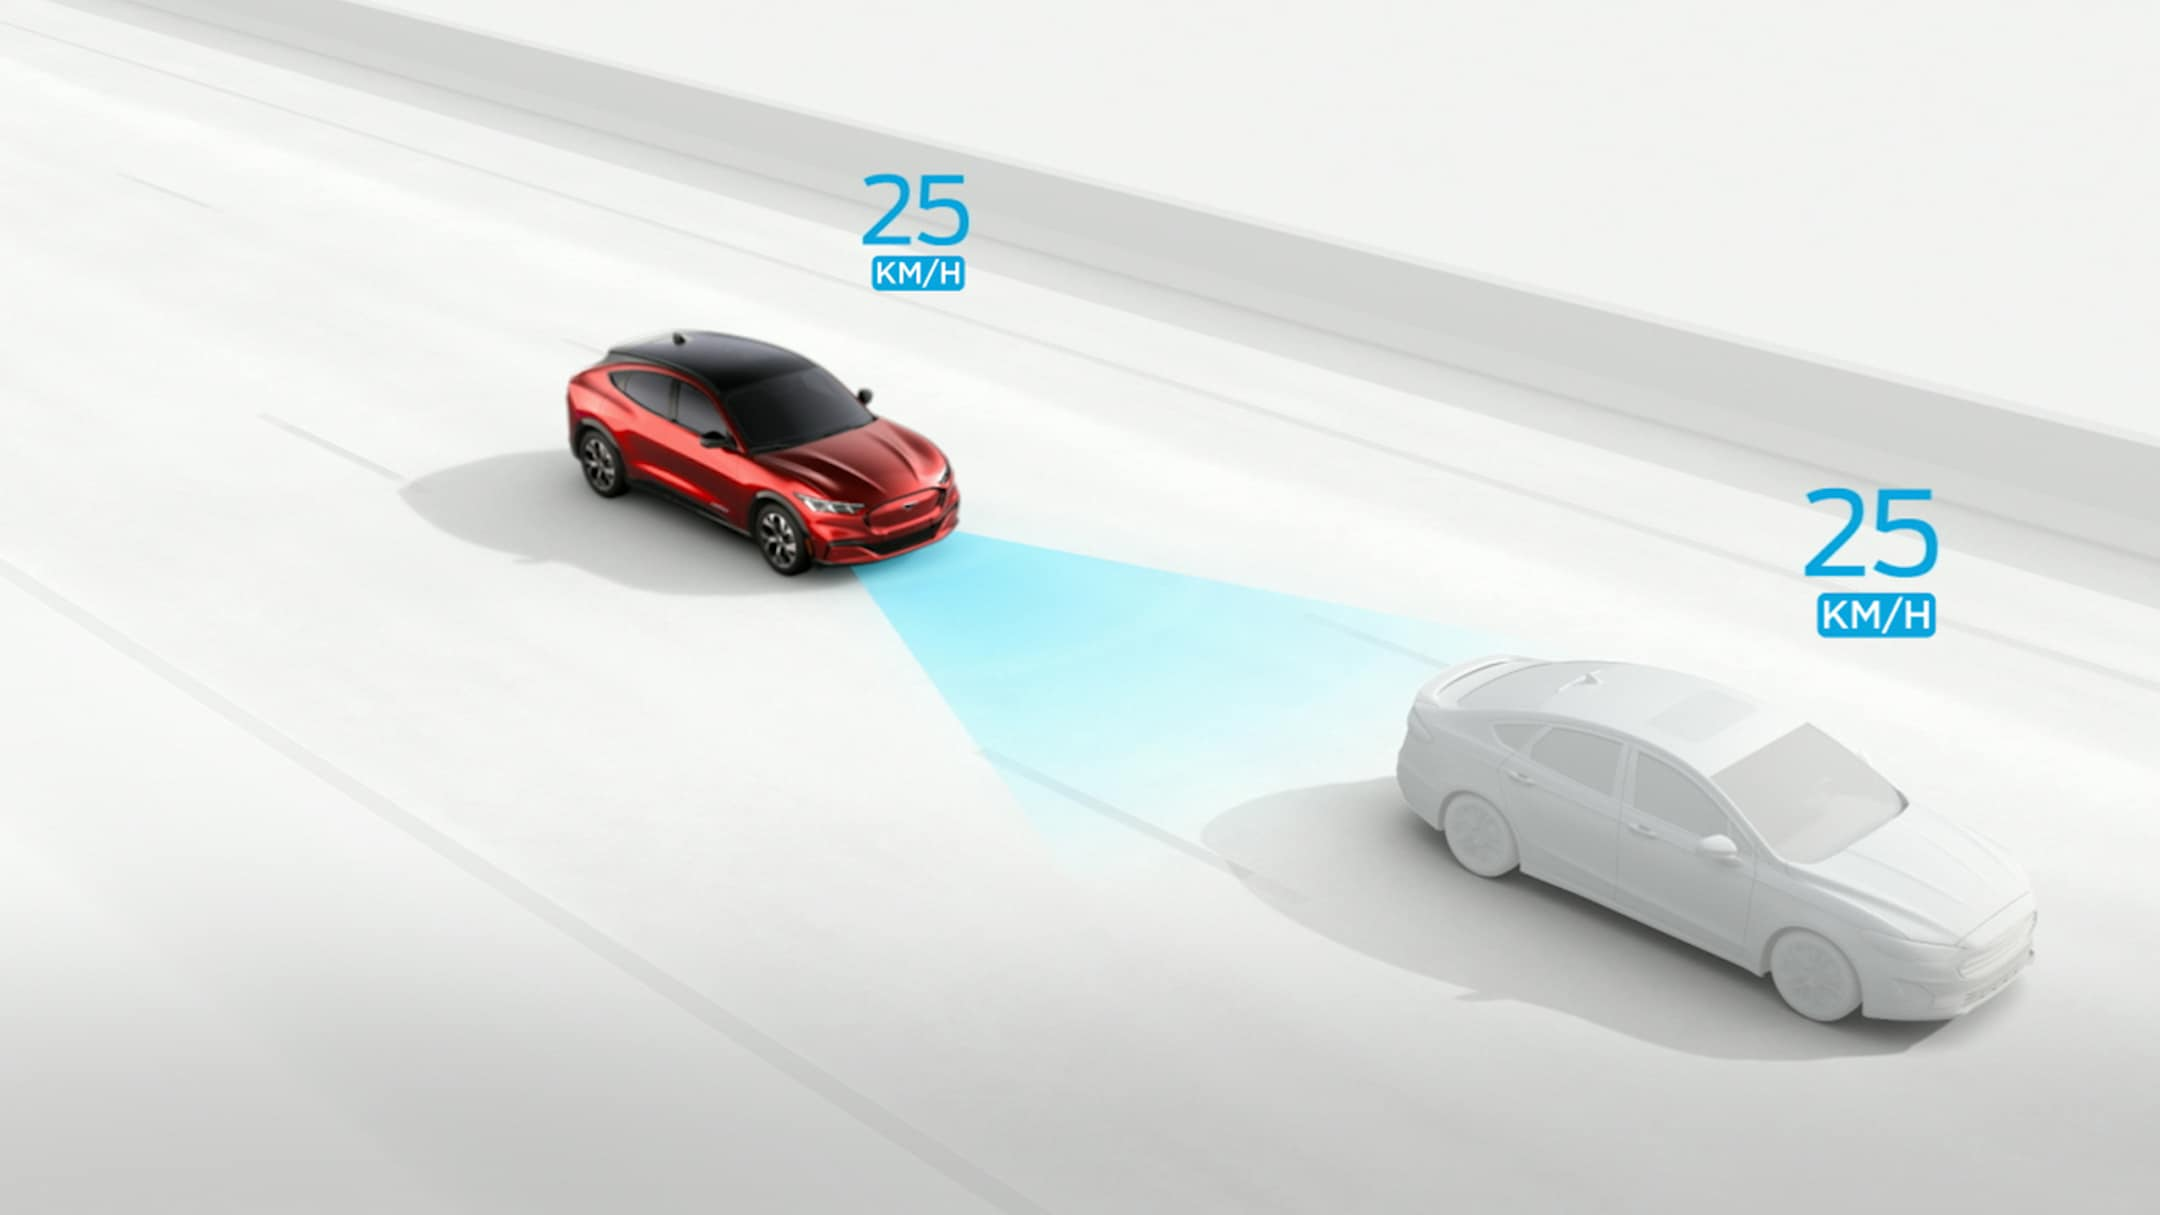 All-New Ford Mustang Mach-E driving behind a car using the Adaptive Cruise Control to maintain a pre-set distance